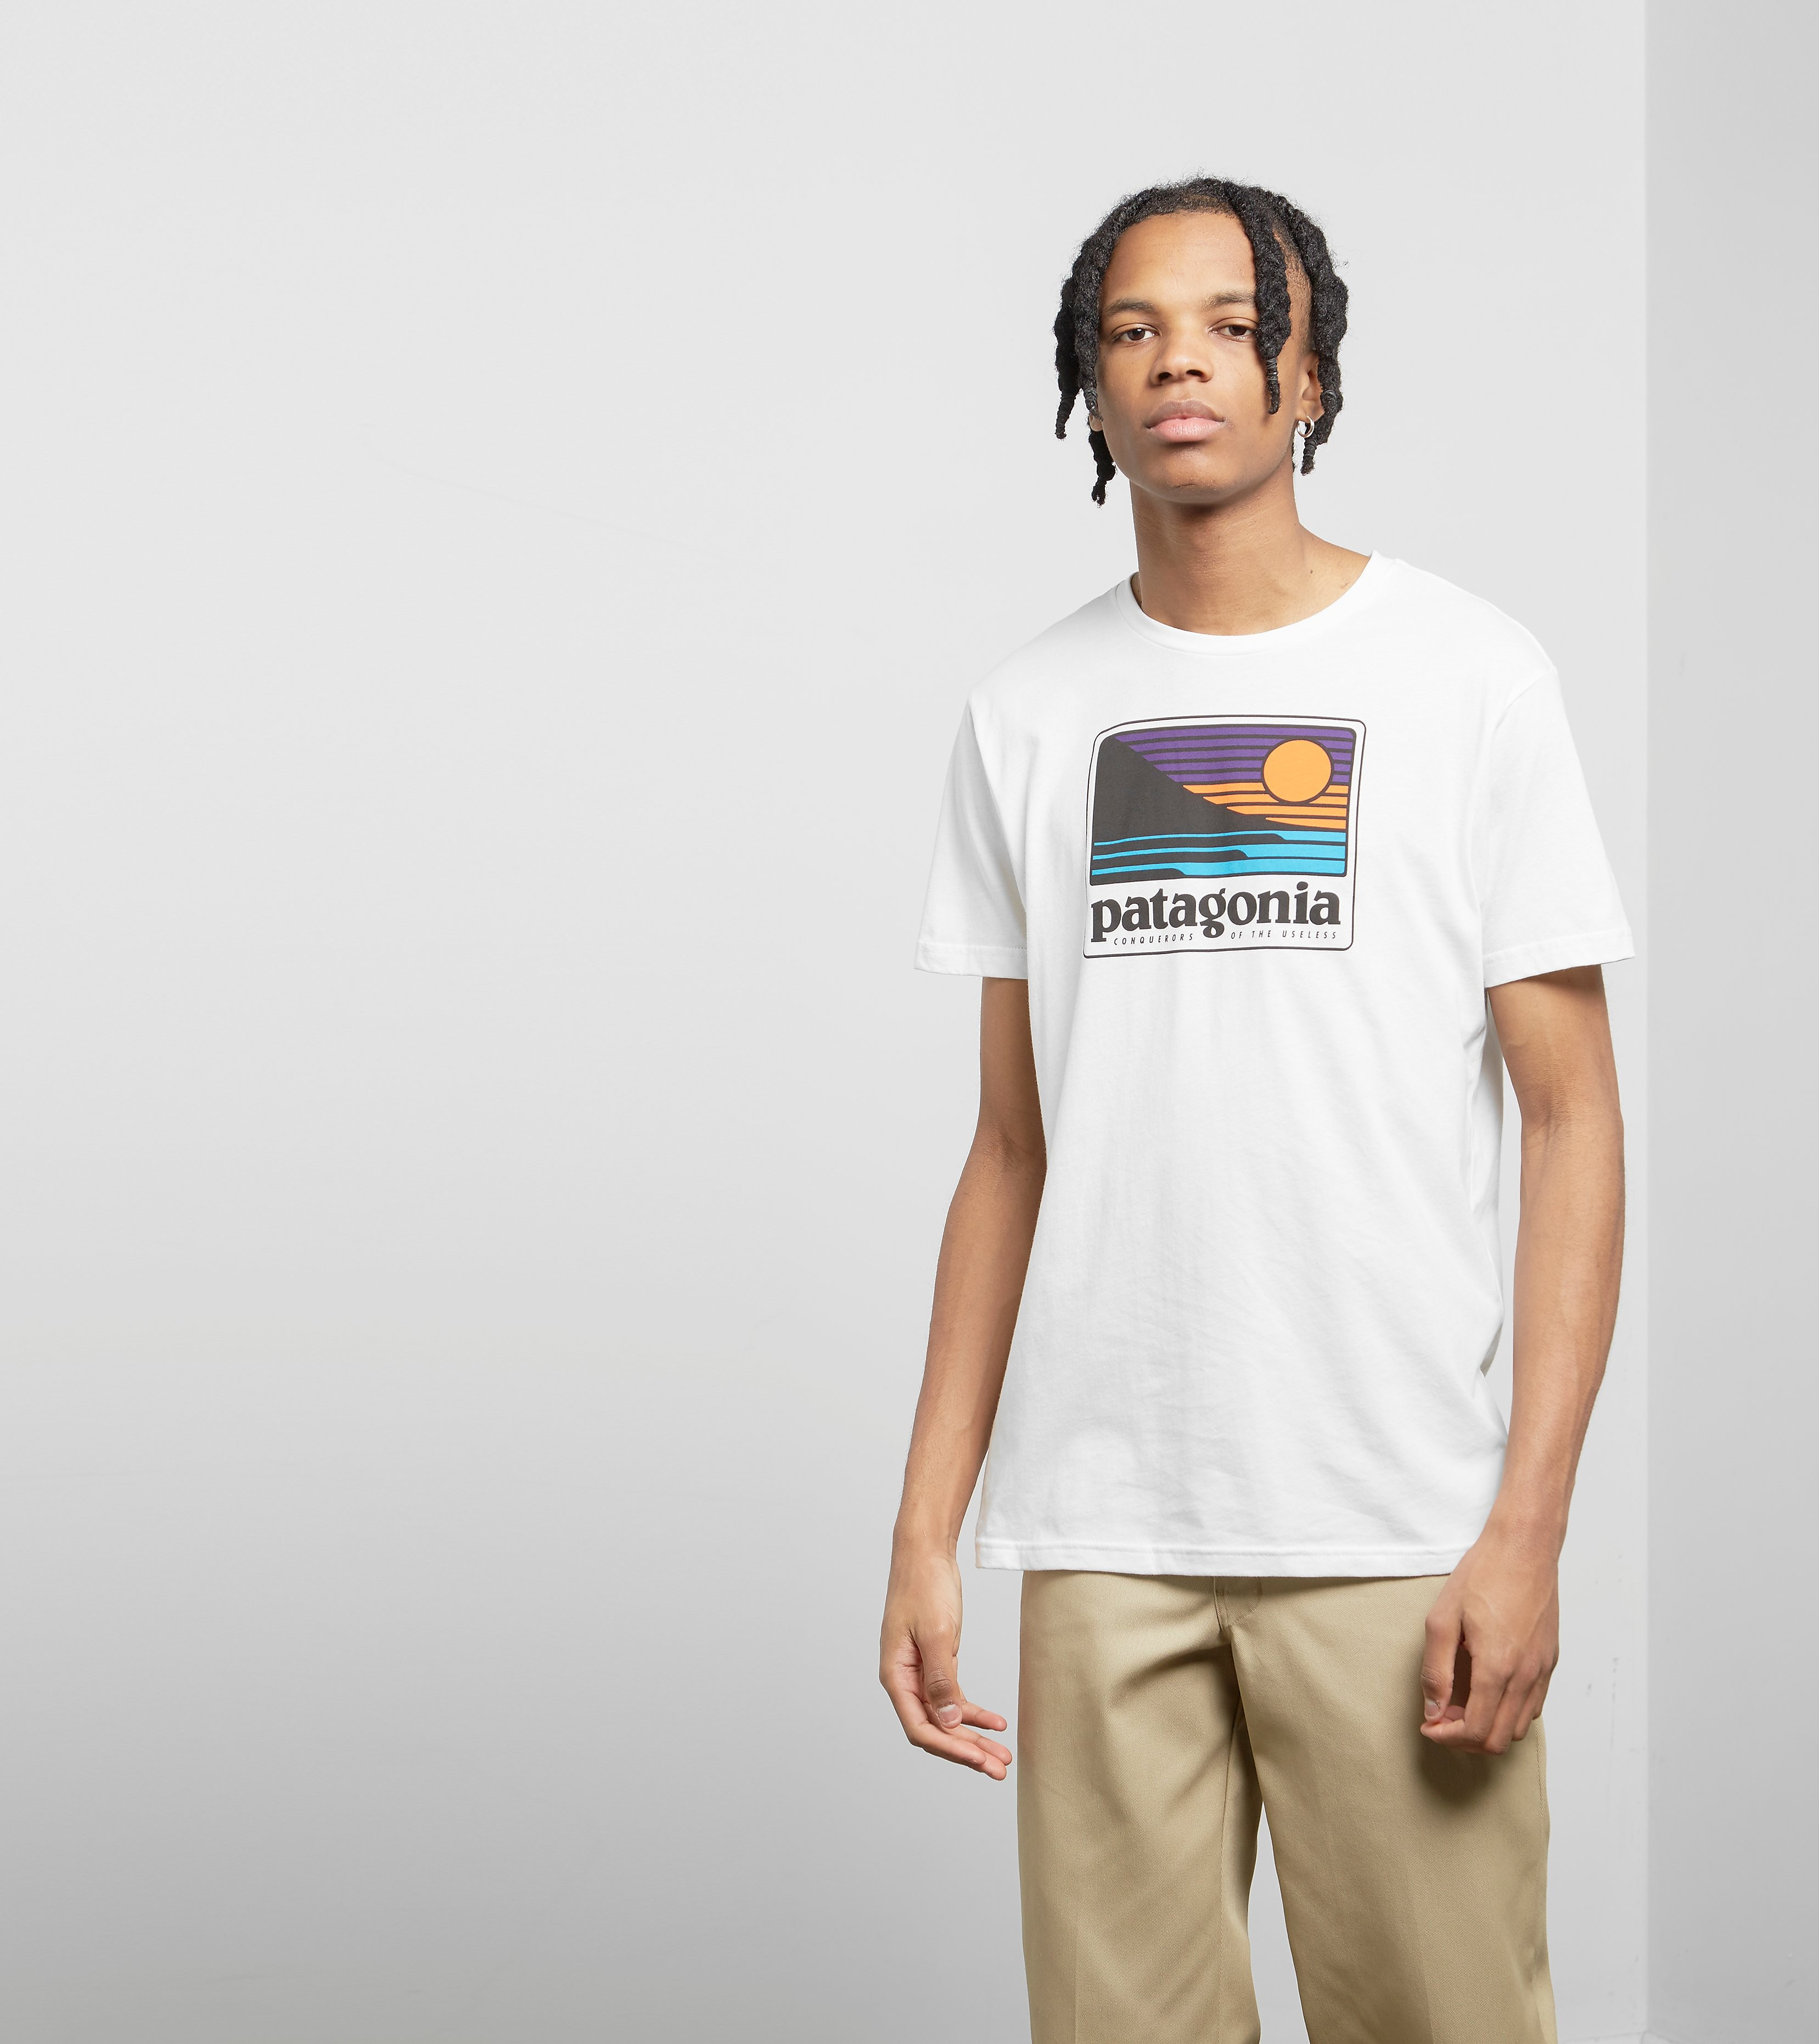 Patagonia Up & Out T-Shirt